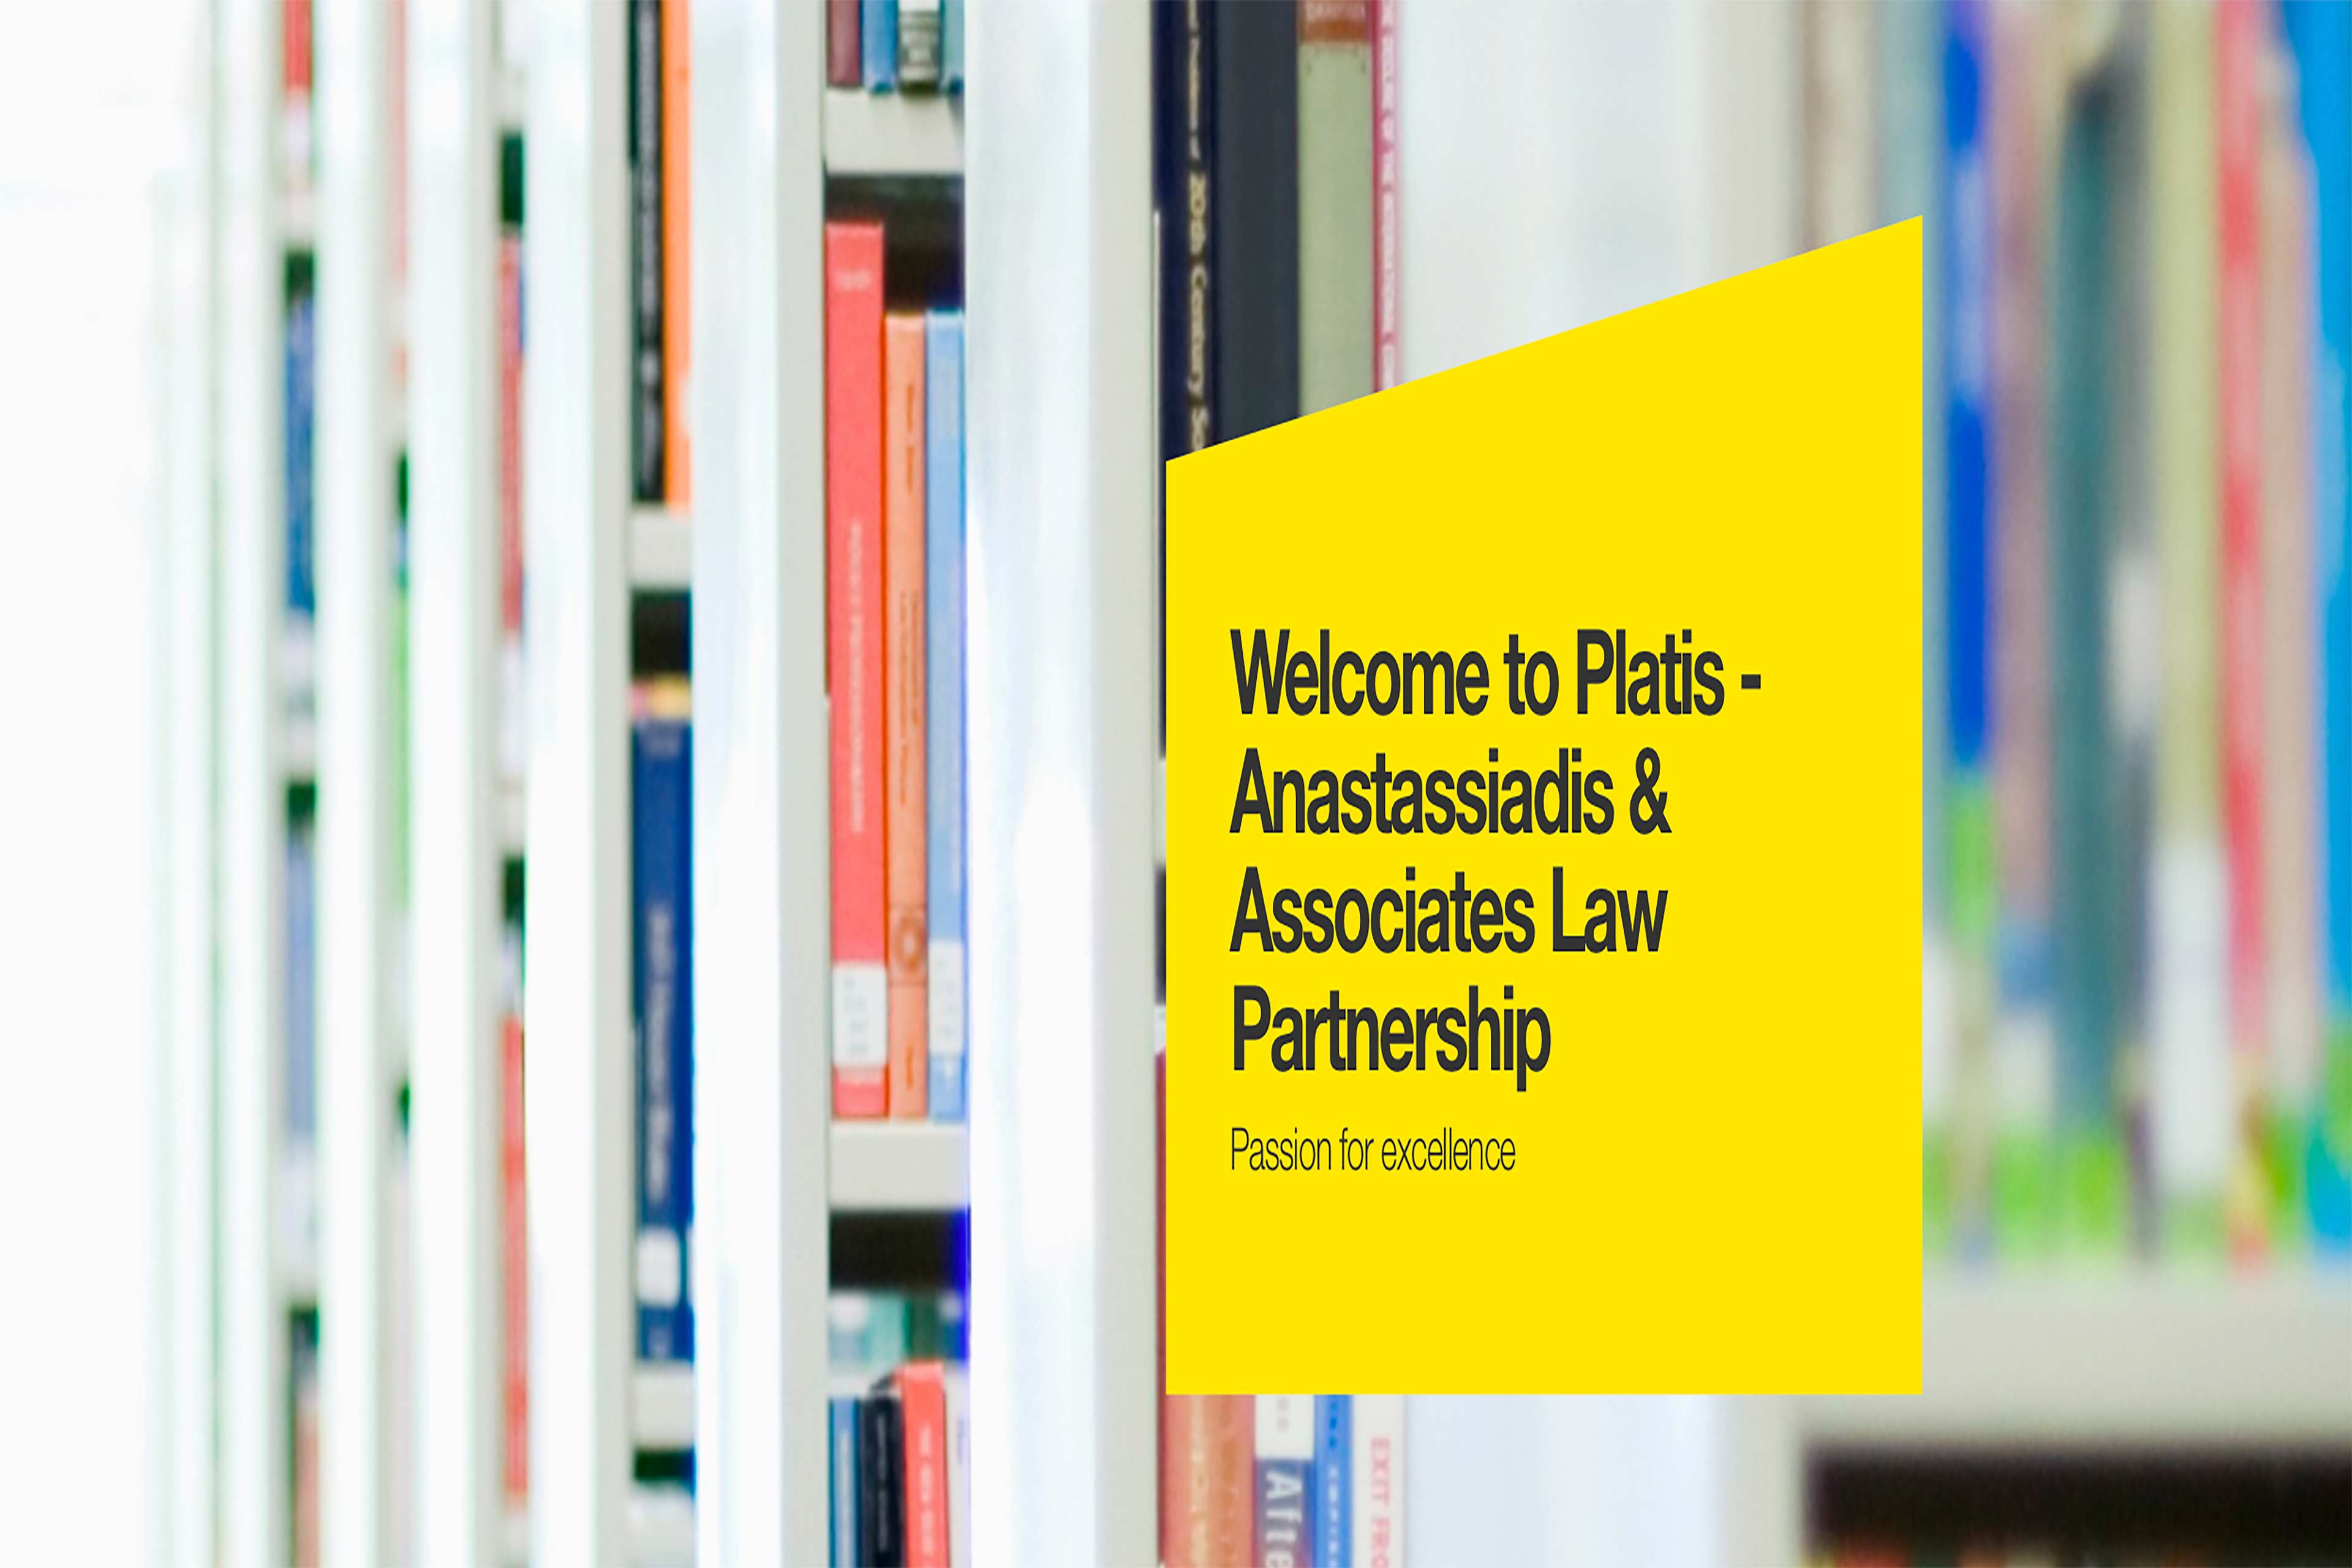 Platis – Anastassiadis & Associates Law Partnership